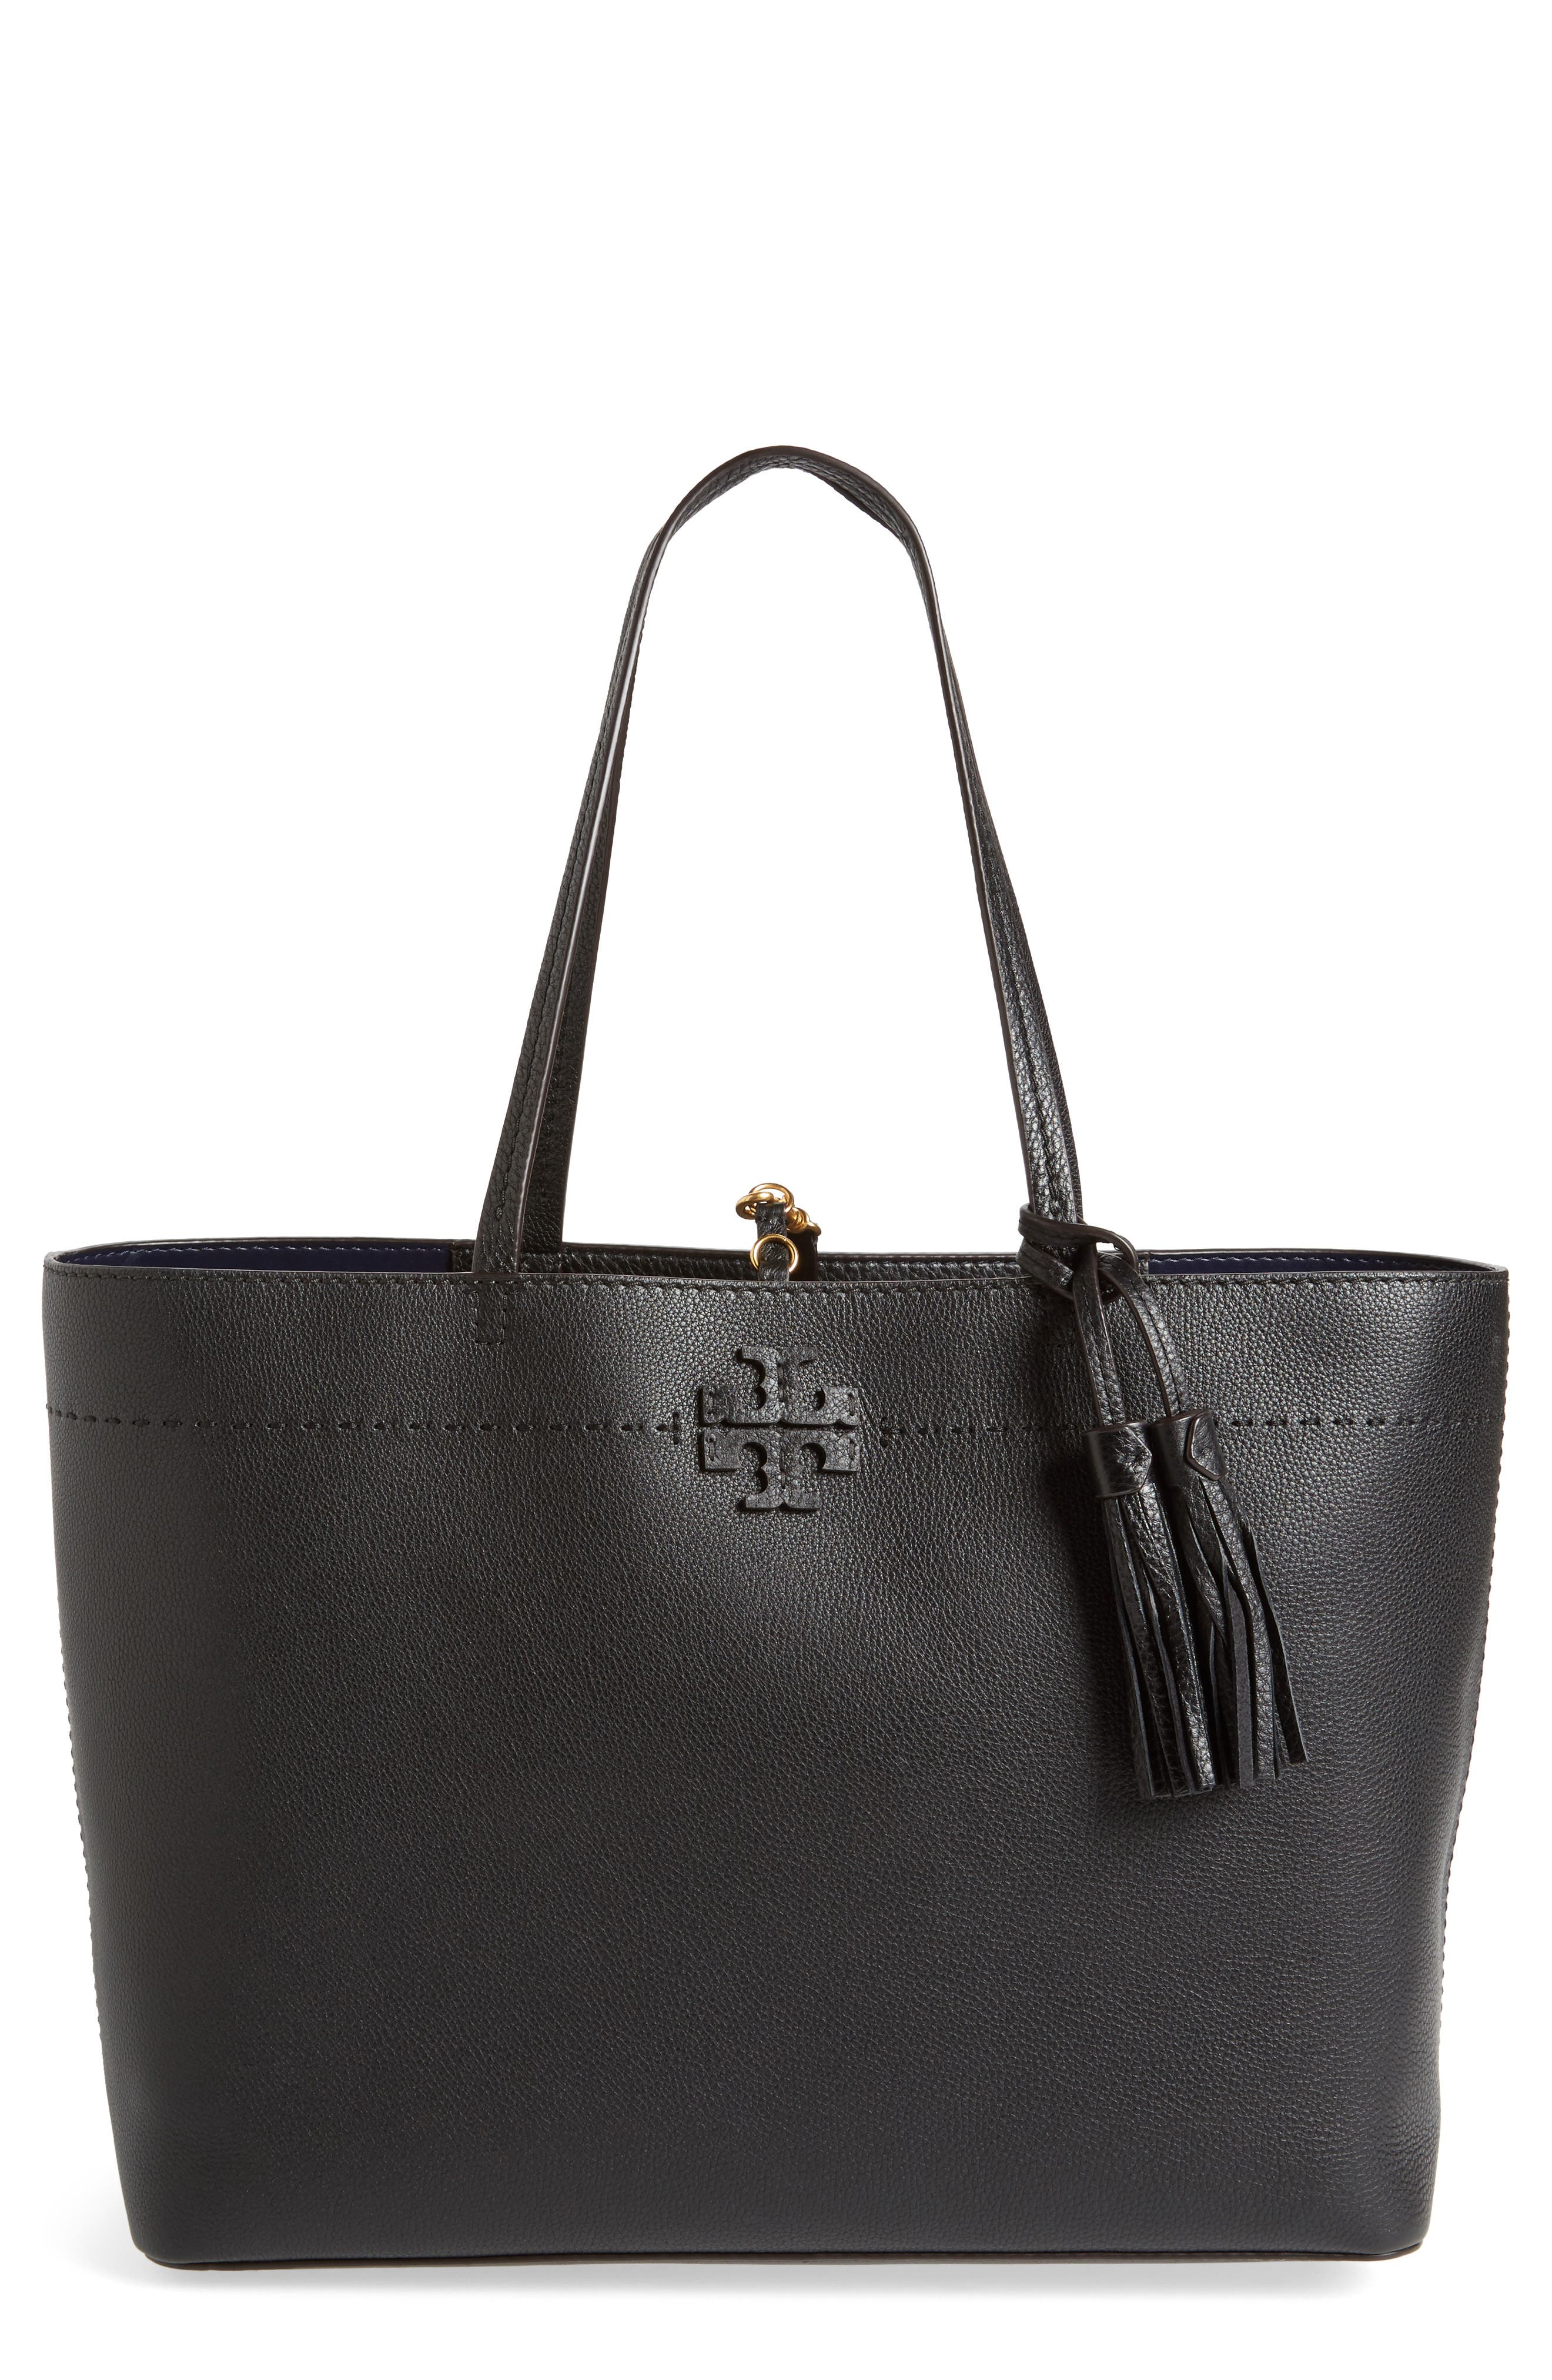 TORY BURCH McGraw Leather Laptop Tote, Main, color, BLACK/ ROYAL NAVY